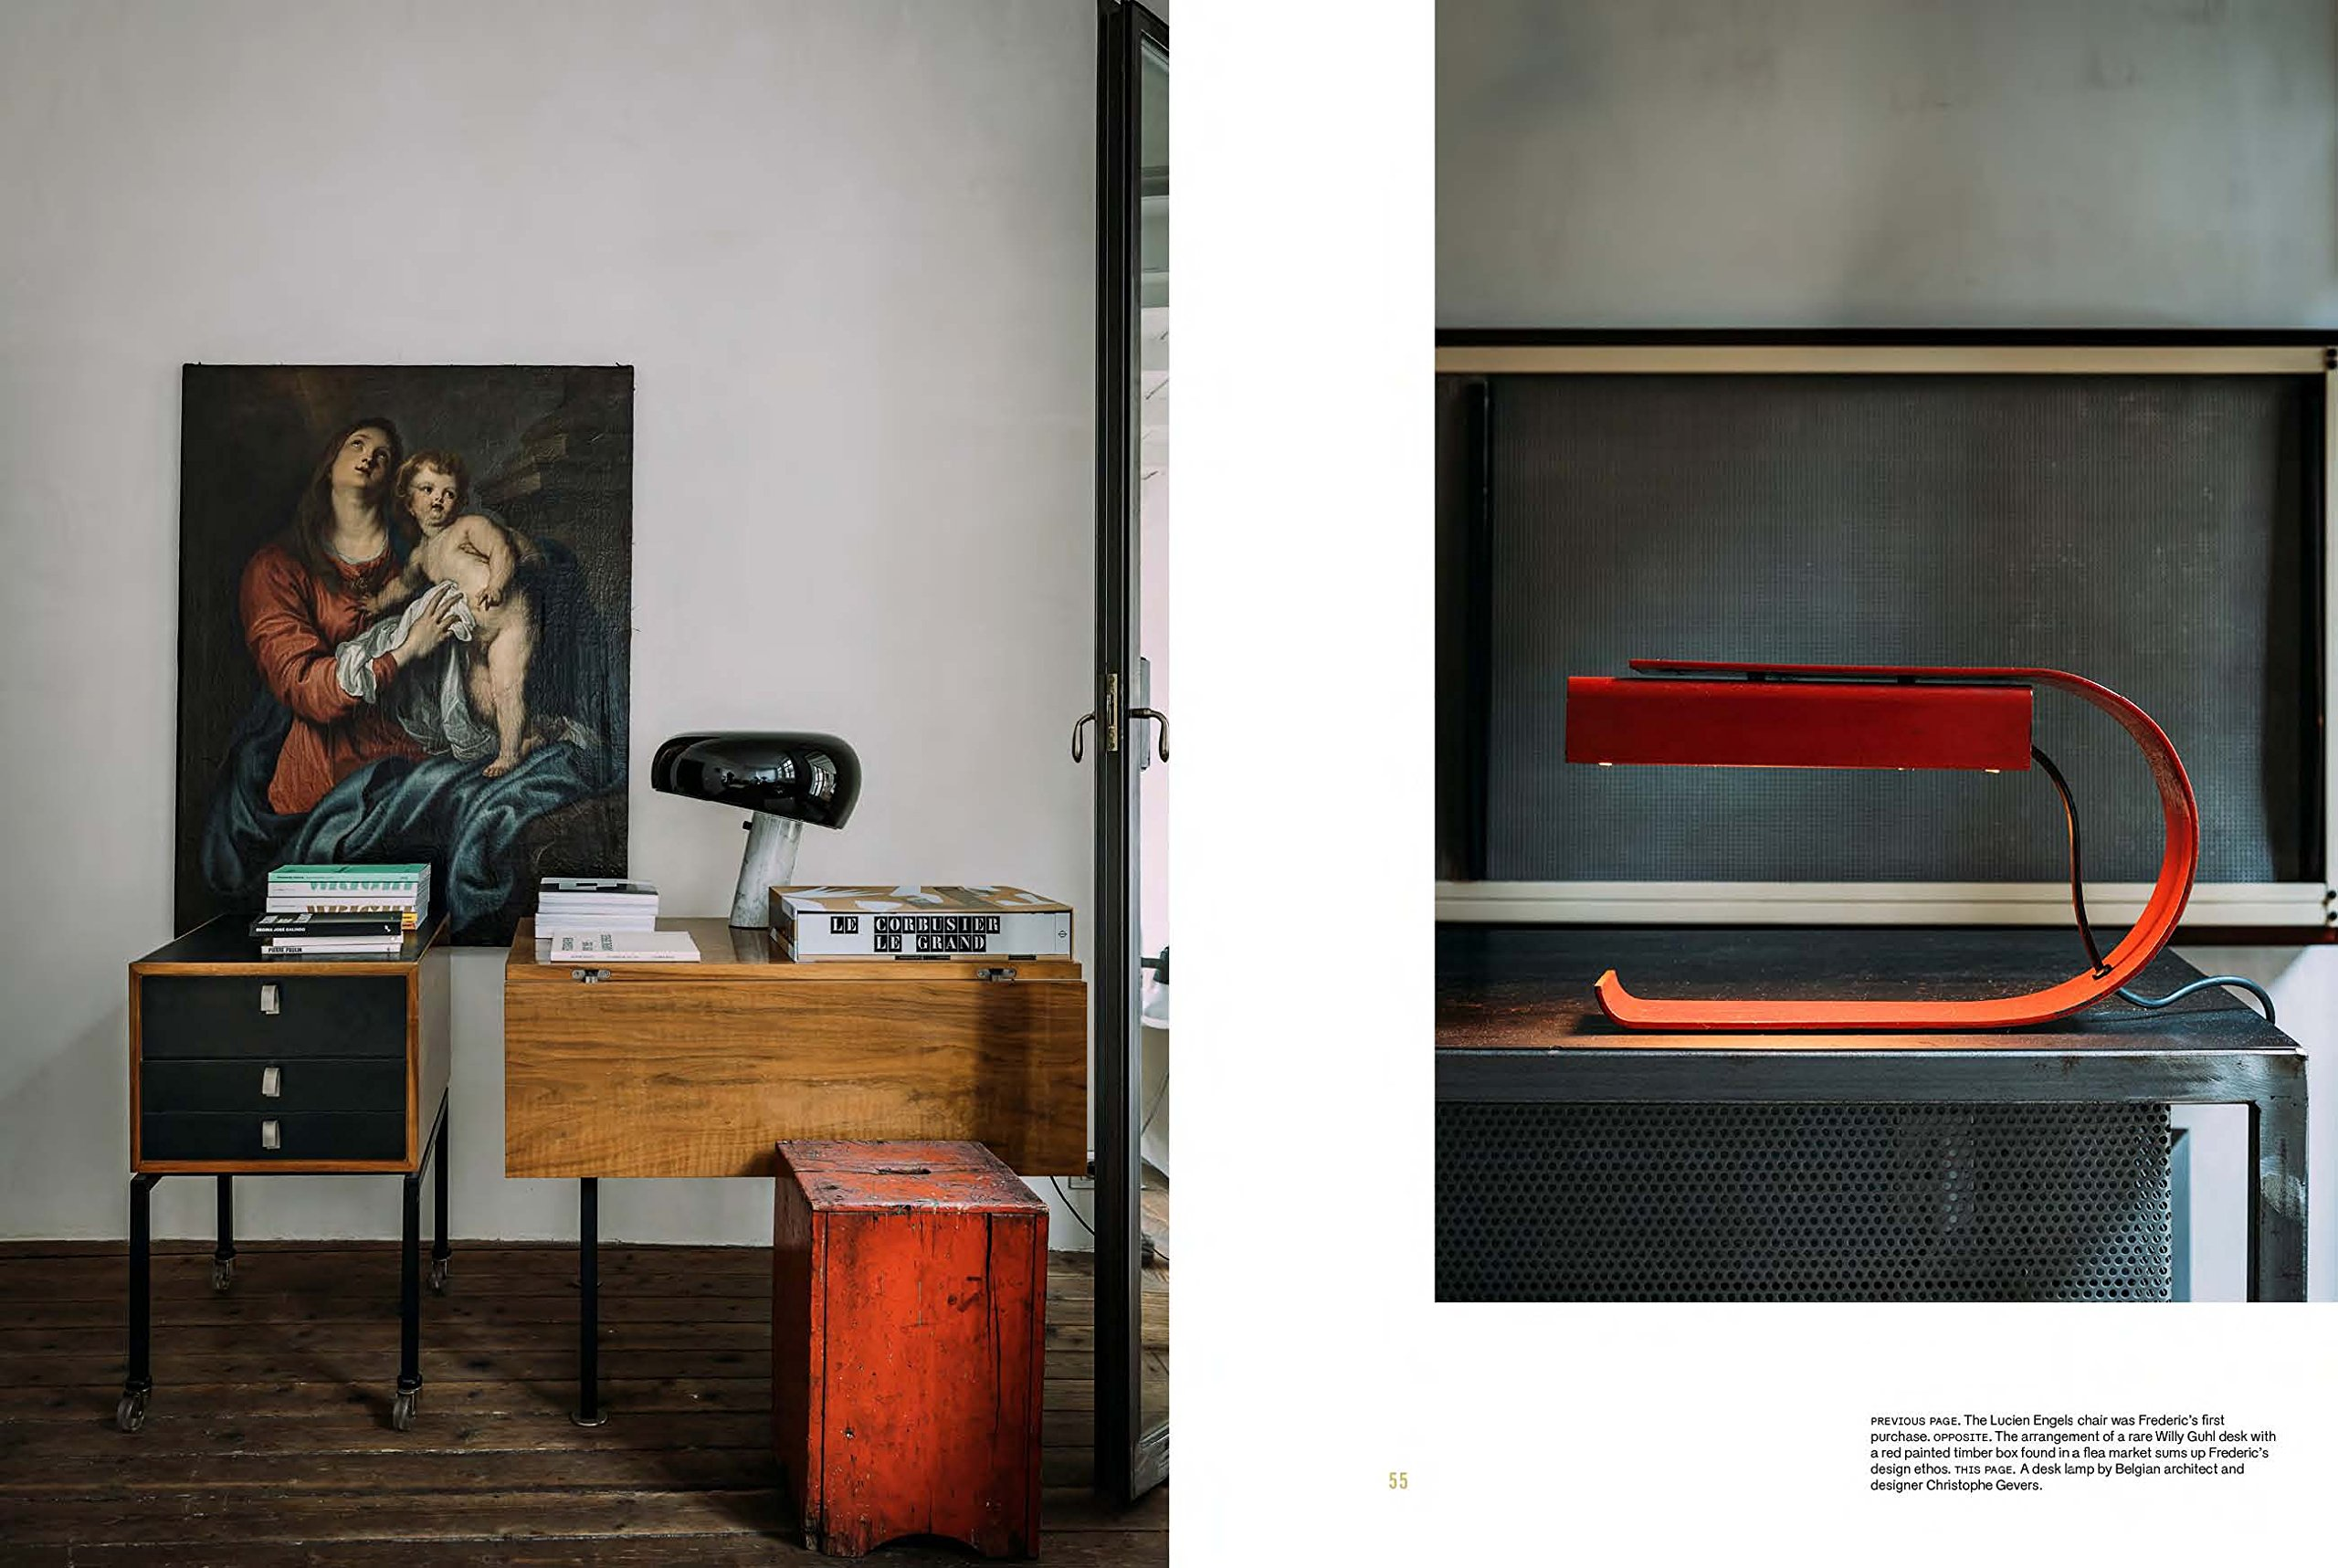 The Alchemy of Things: Interiors shaped by curious minds